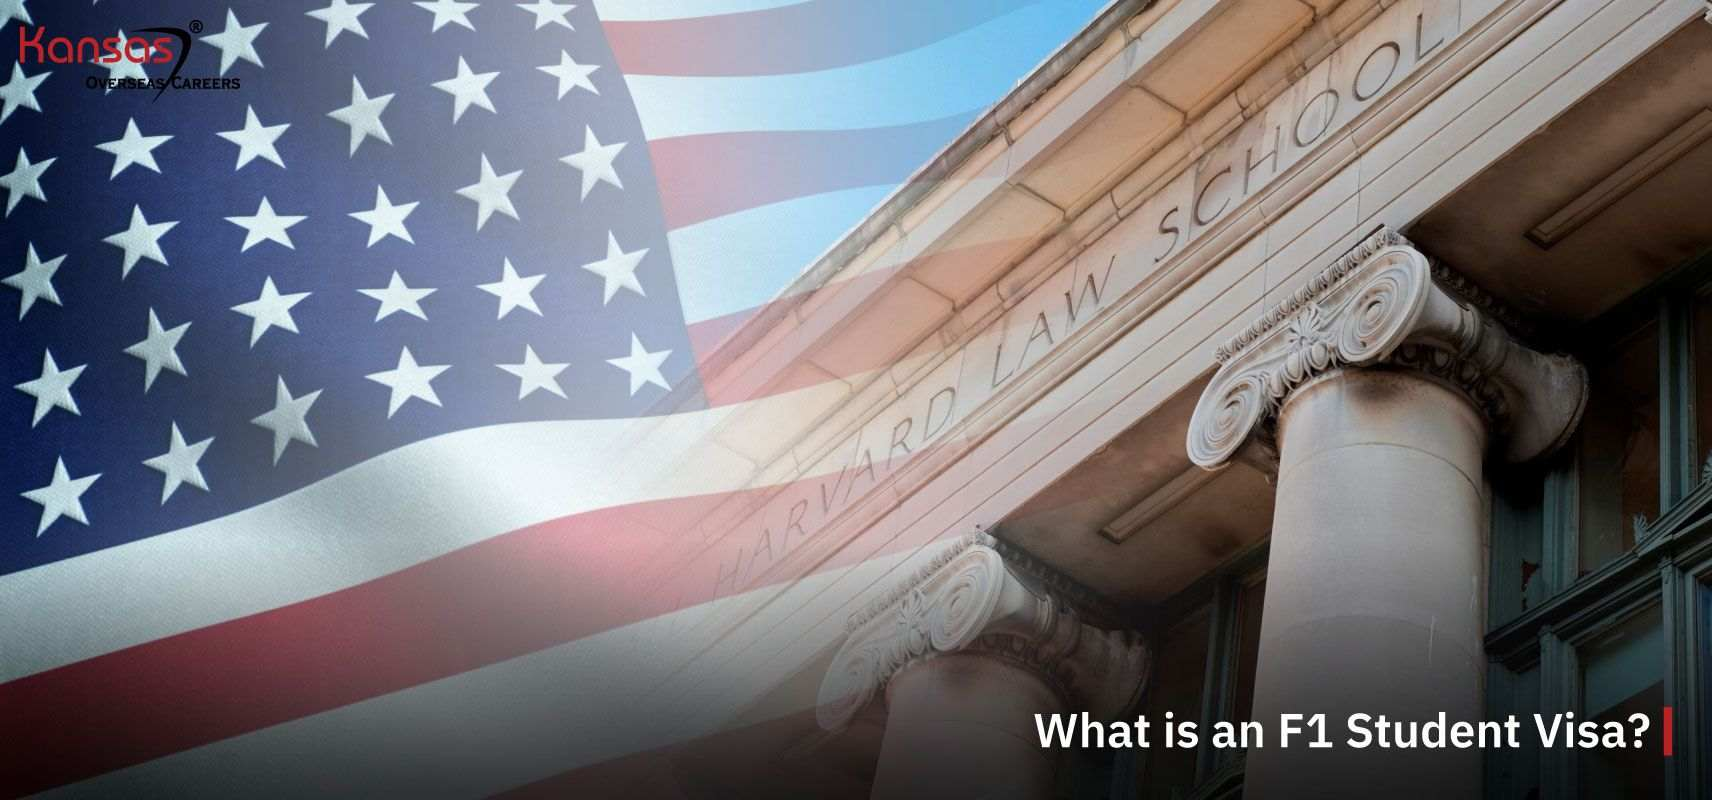 What-is-an-F1-Student-Visa-